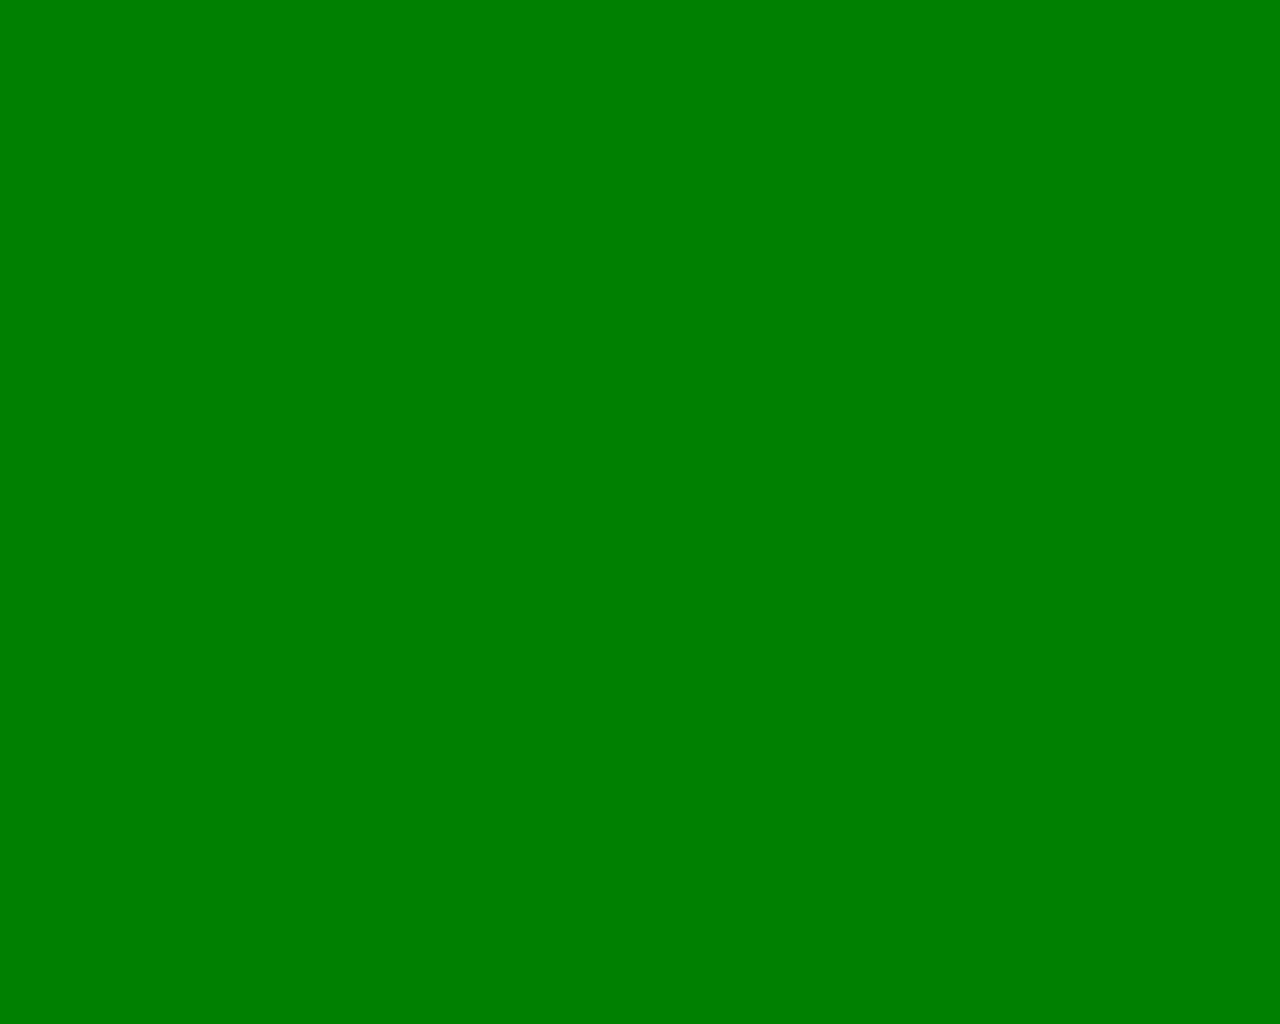 solid green background related - photo #1